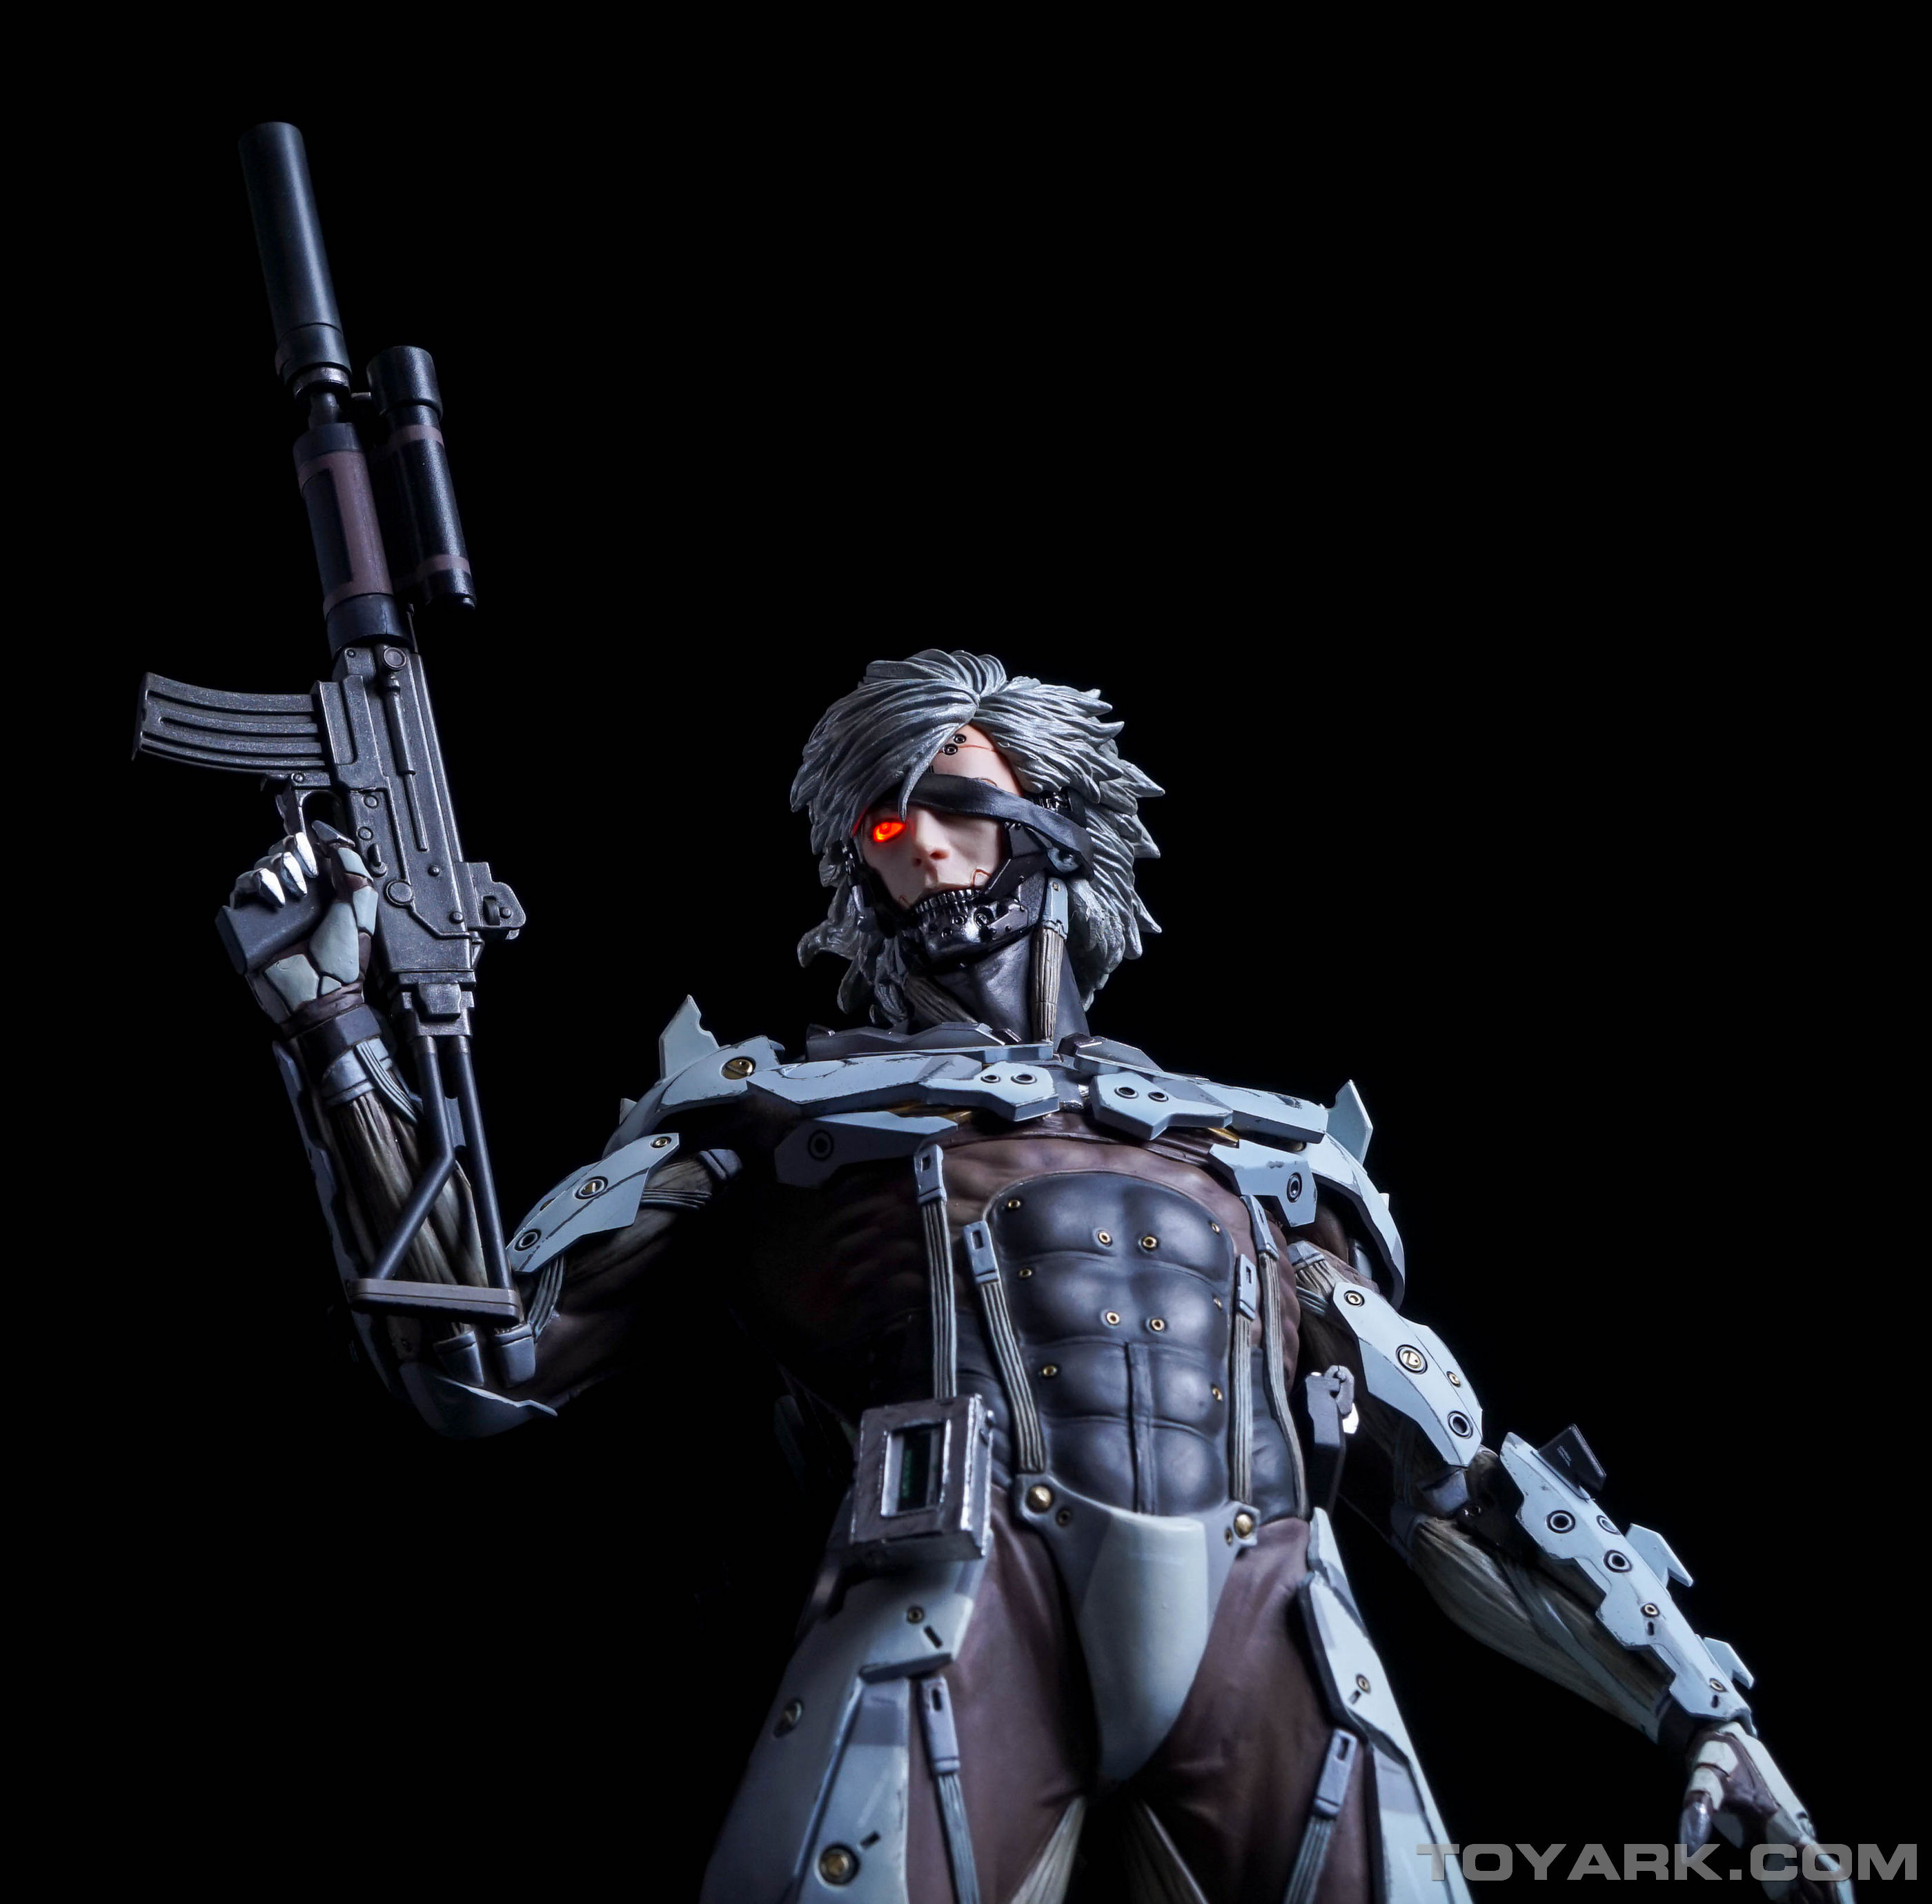 http://news.toyark.com/wp-content/uploads/sites/4/2015/09/MGSV-Raiden-White-Armor-Statue-032.jpg